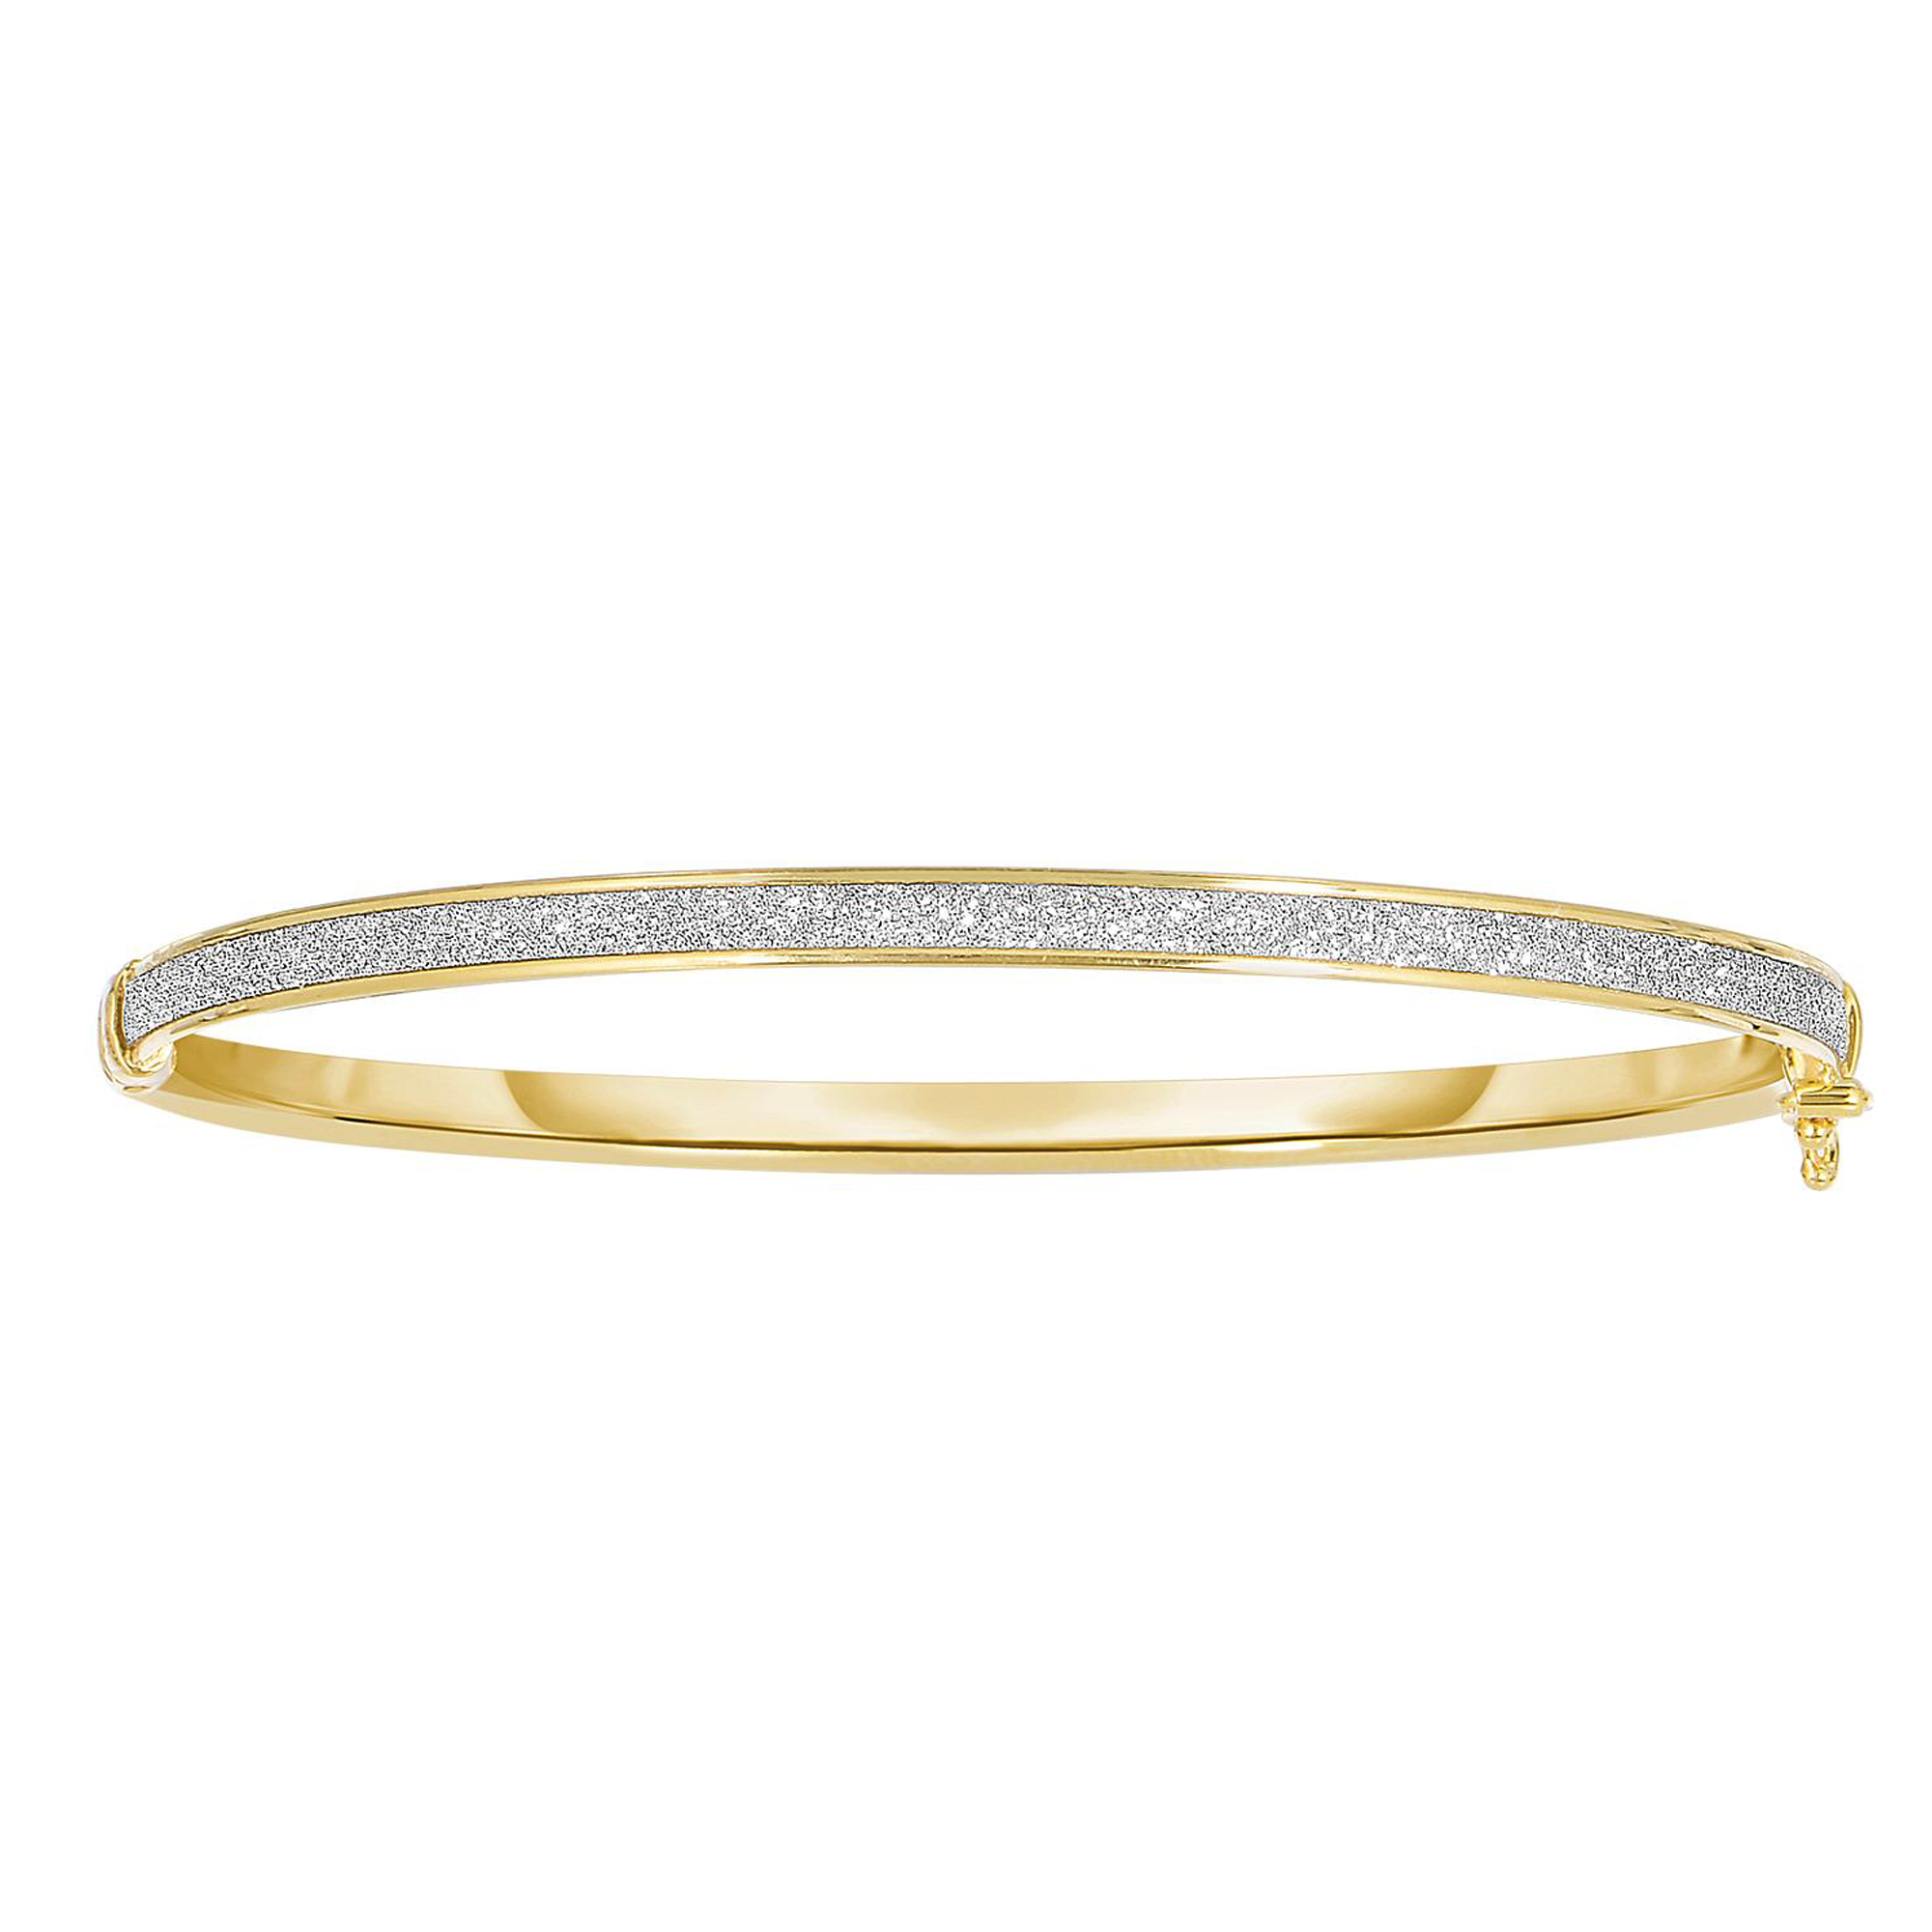 14k Yellow Gold Shiny Oval Shape White Gliter Bangle Bracelet, 7.25″